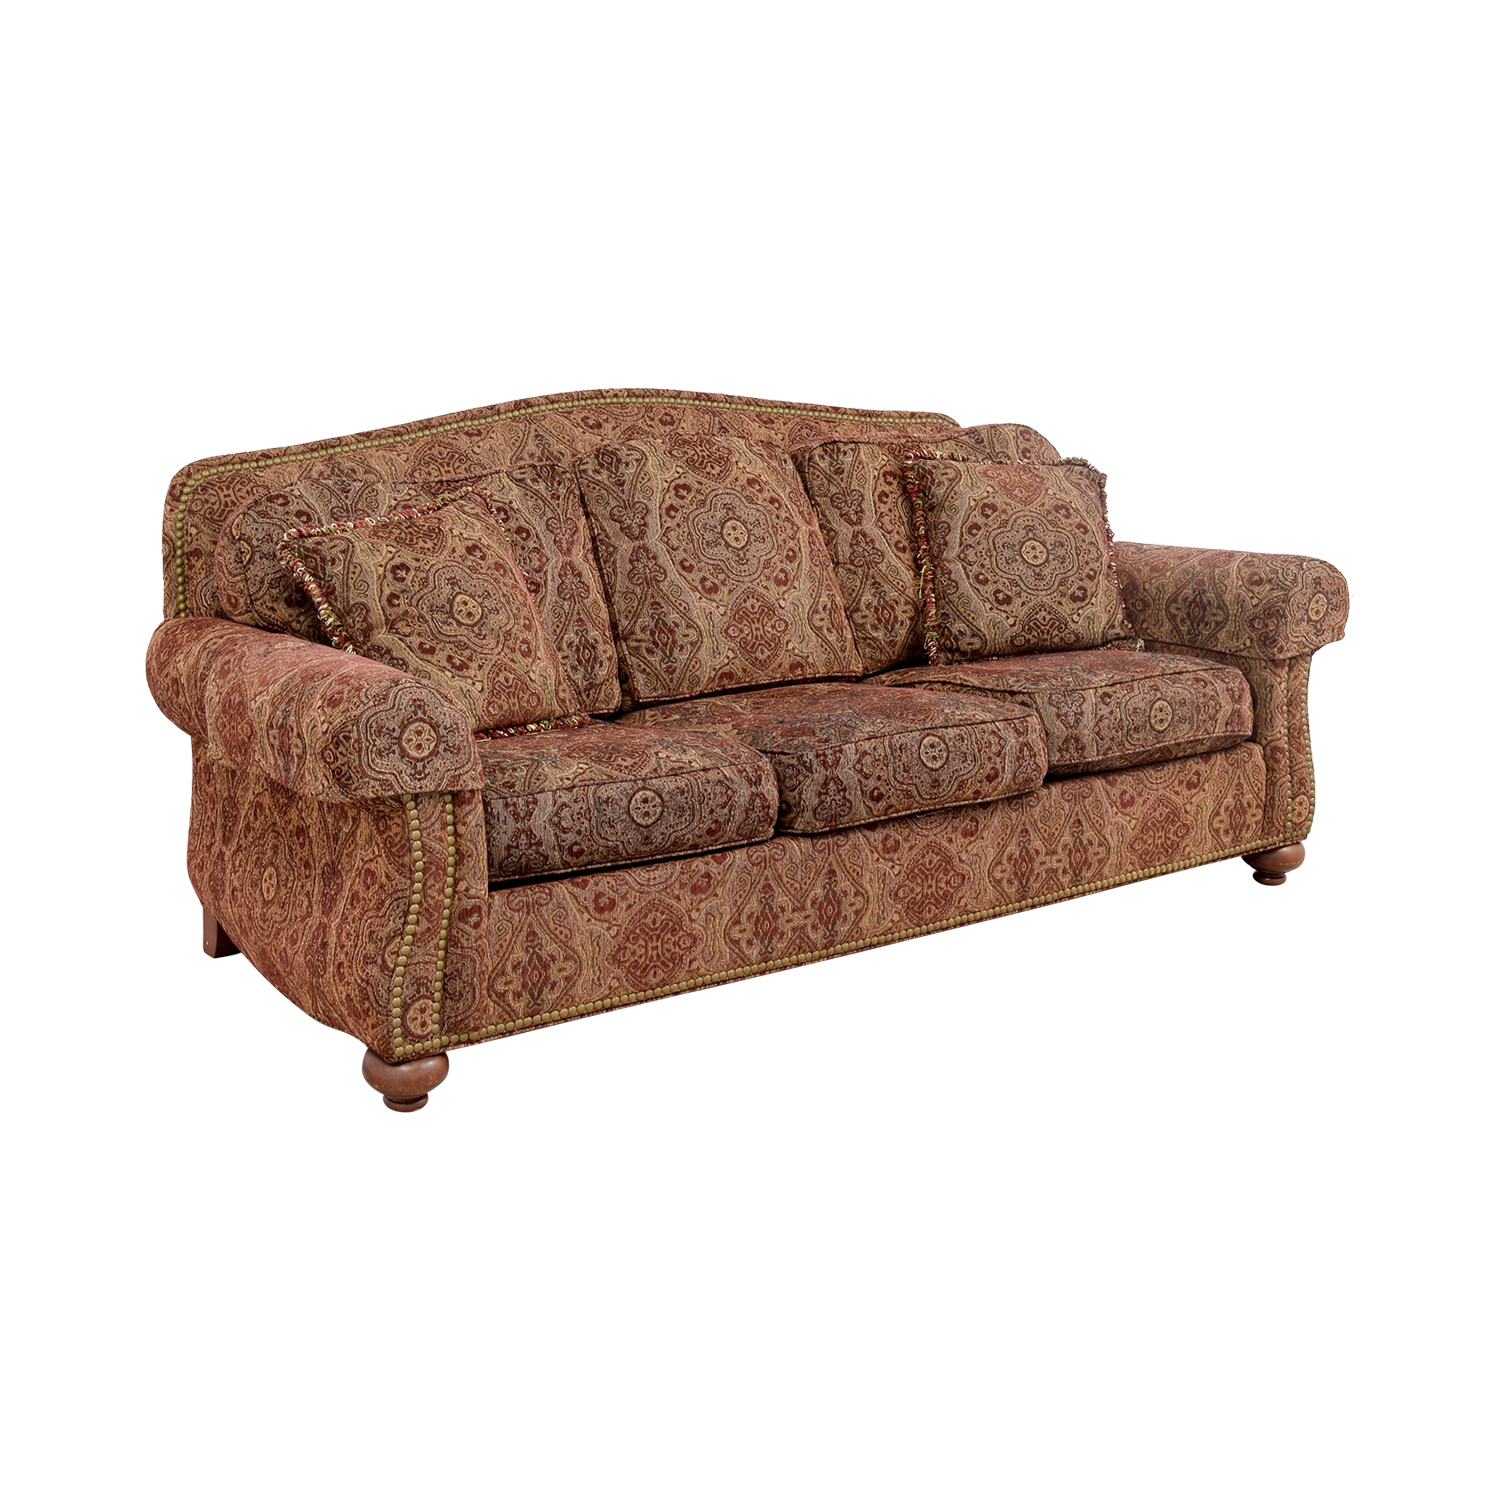 Ethan Allen Whitney Paisley Nailhead Couch / Classic Sofas